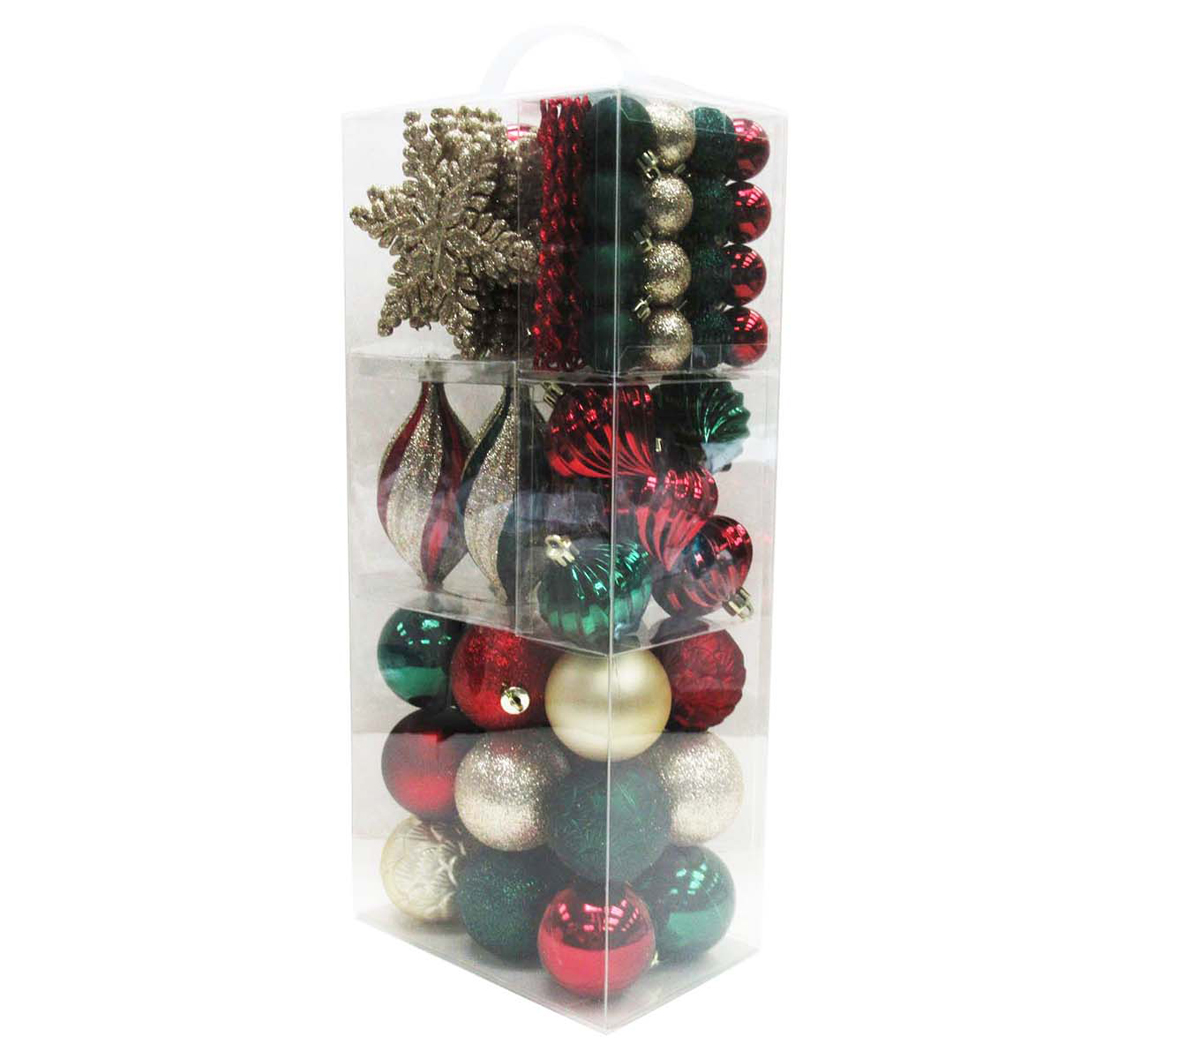 Handmade Holiday Christmas Alpine Lodge 76 pk Ornaments in Suitcase